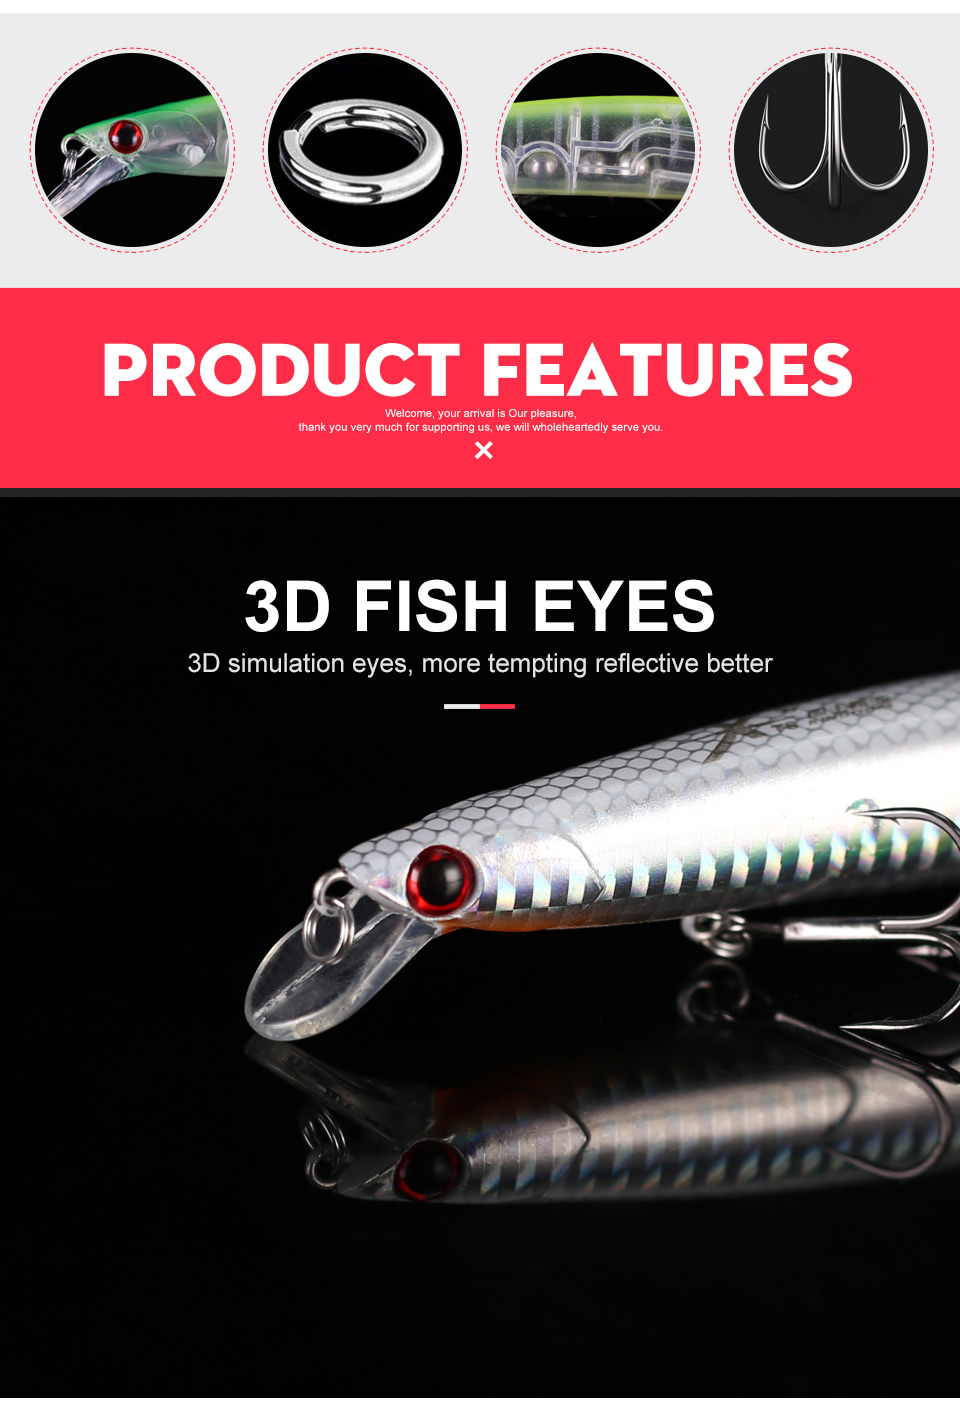 Kingdom 2019 Professional Floating JERKBAIT Fishing Lures 125mm 20g Wobblers Minnow Hard Baits Depth 0.2-0.4m Bass Pike Bait Lure (4)